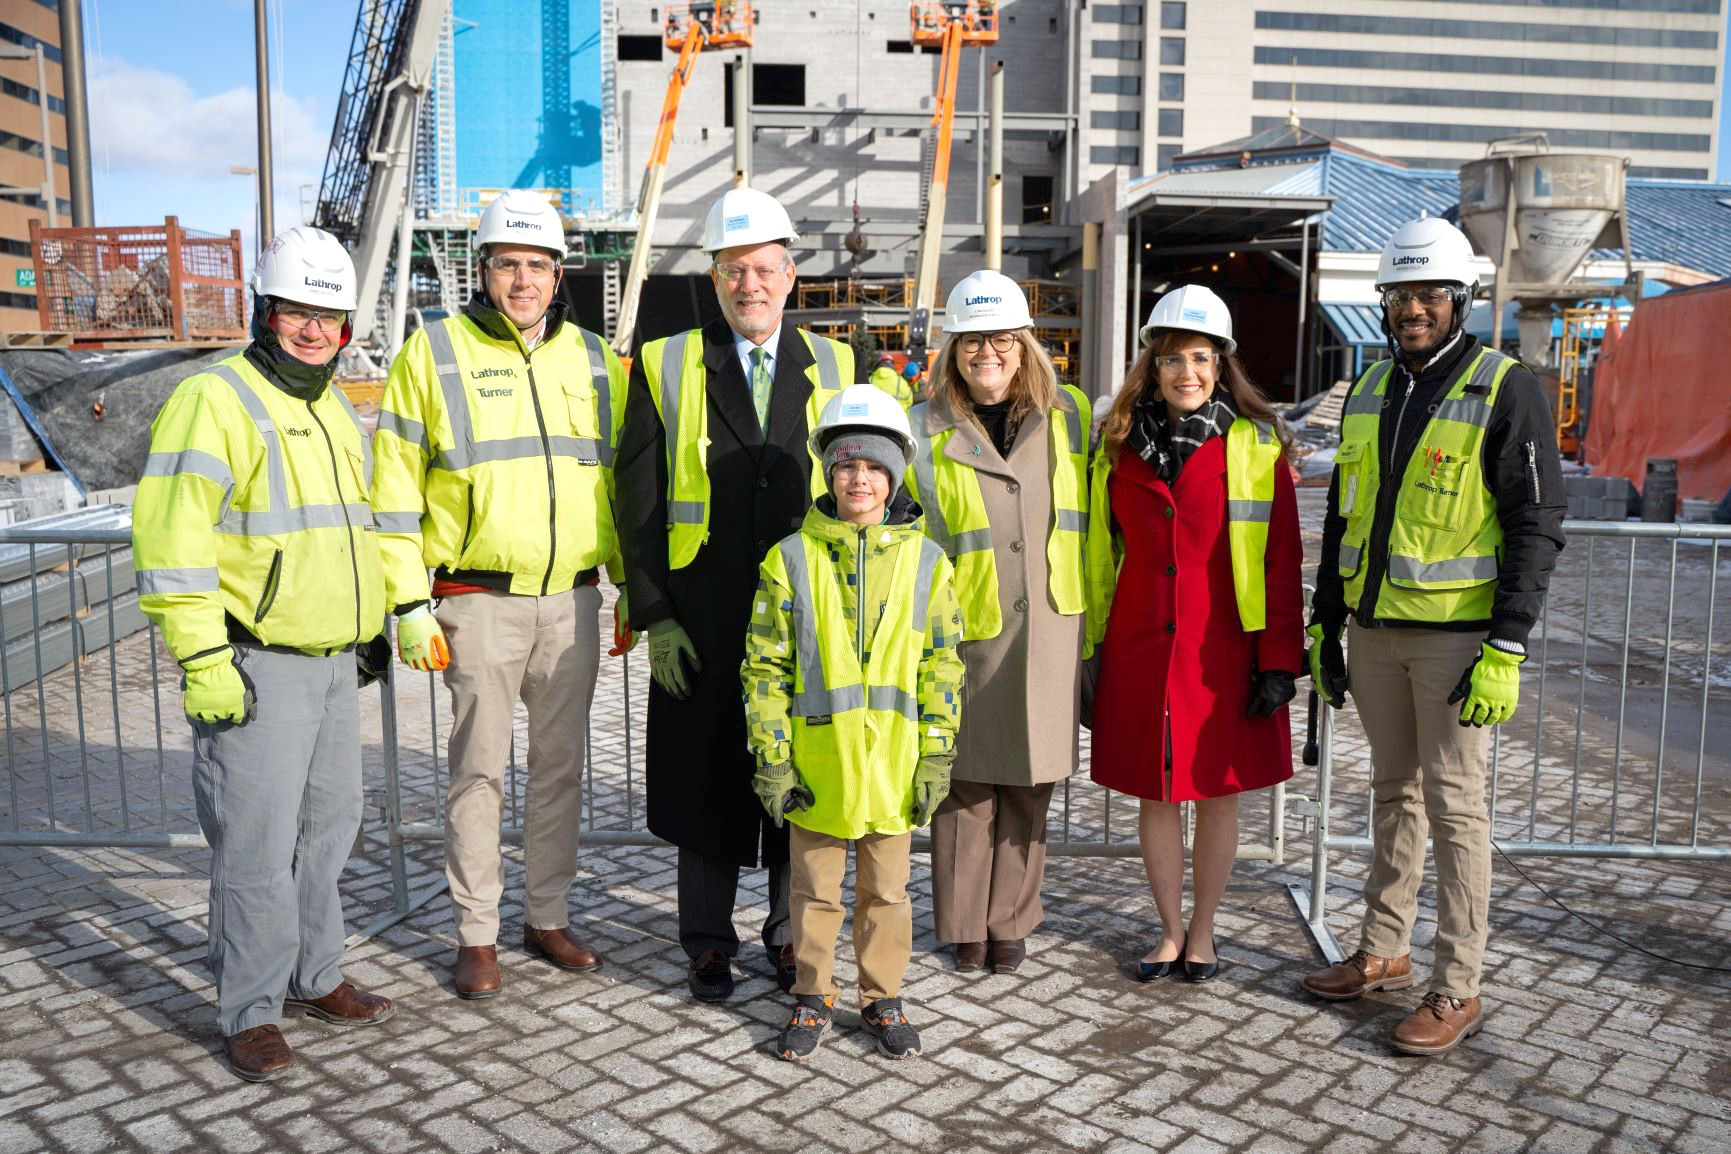 Imagination Station celebrated a major construction milestone on its new KeyBank Discovery Theater Dec. 18. The topping out ceremony commemorated the placement of one of the highest beams in the structural framework for the new addition. (Photo courtesy of Imagination Station)